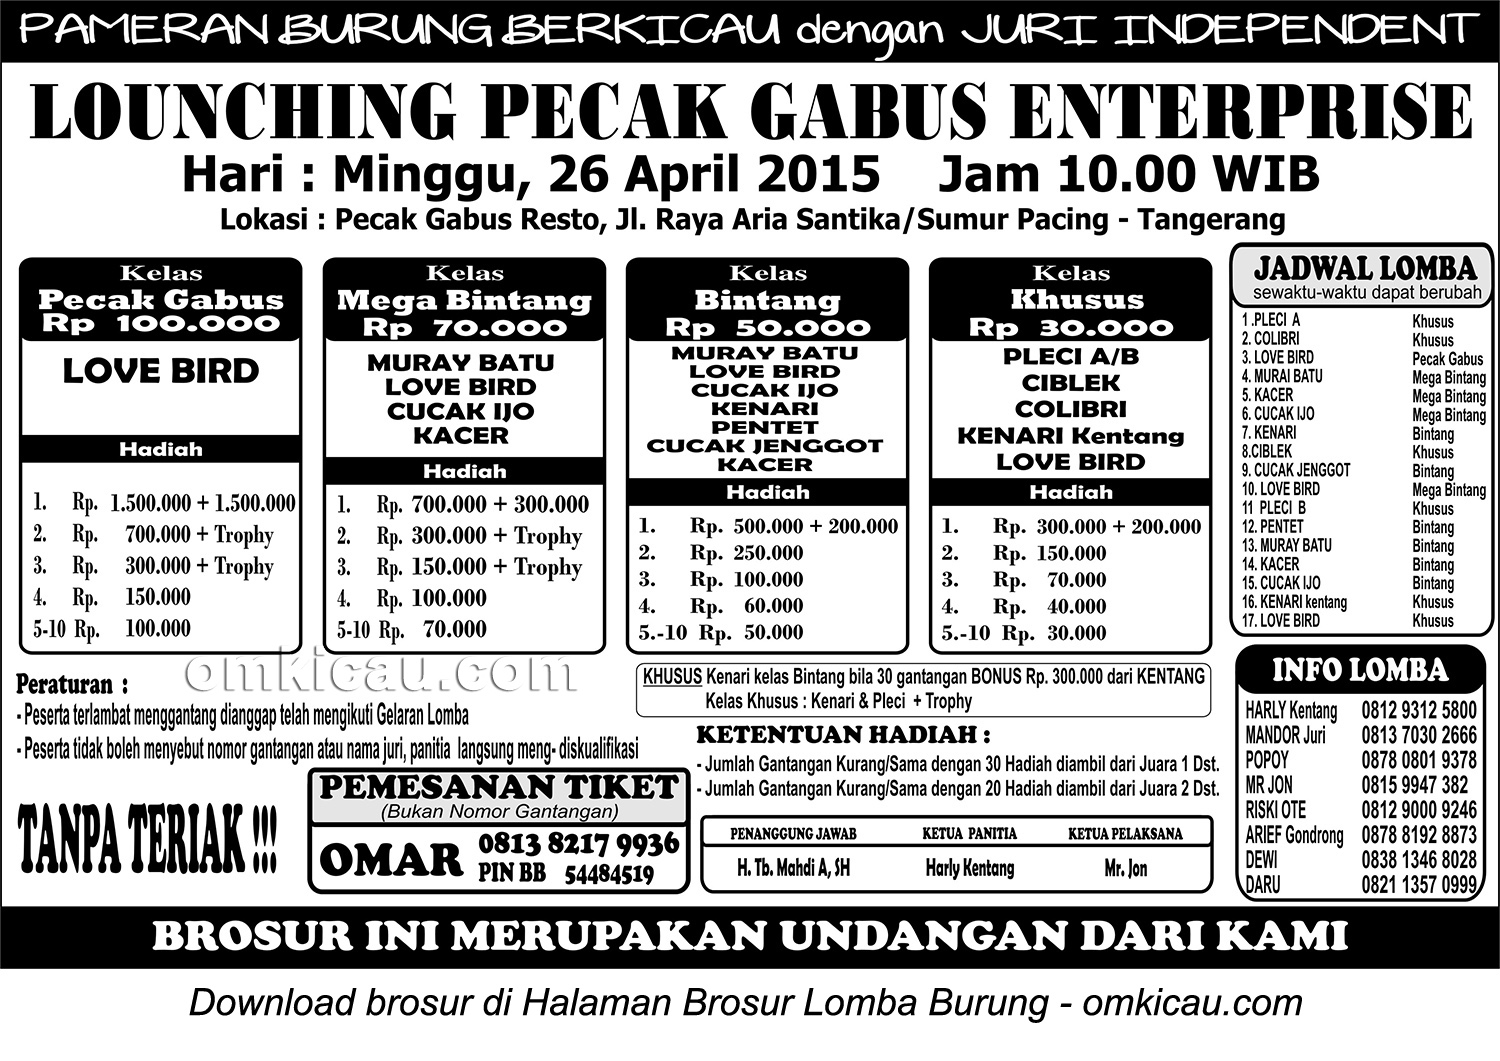 Brosur Launching Pecak Gabus Enterprise Tangerang, 26 April 2015